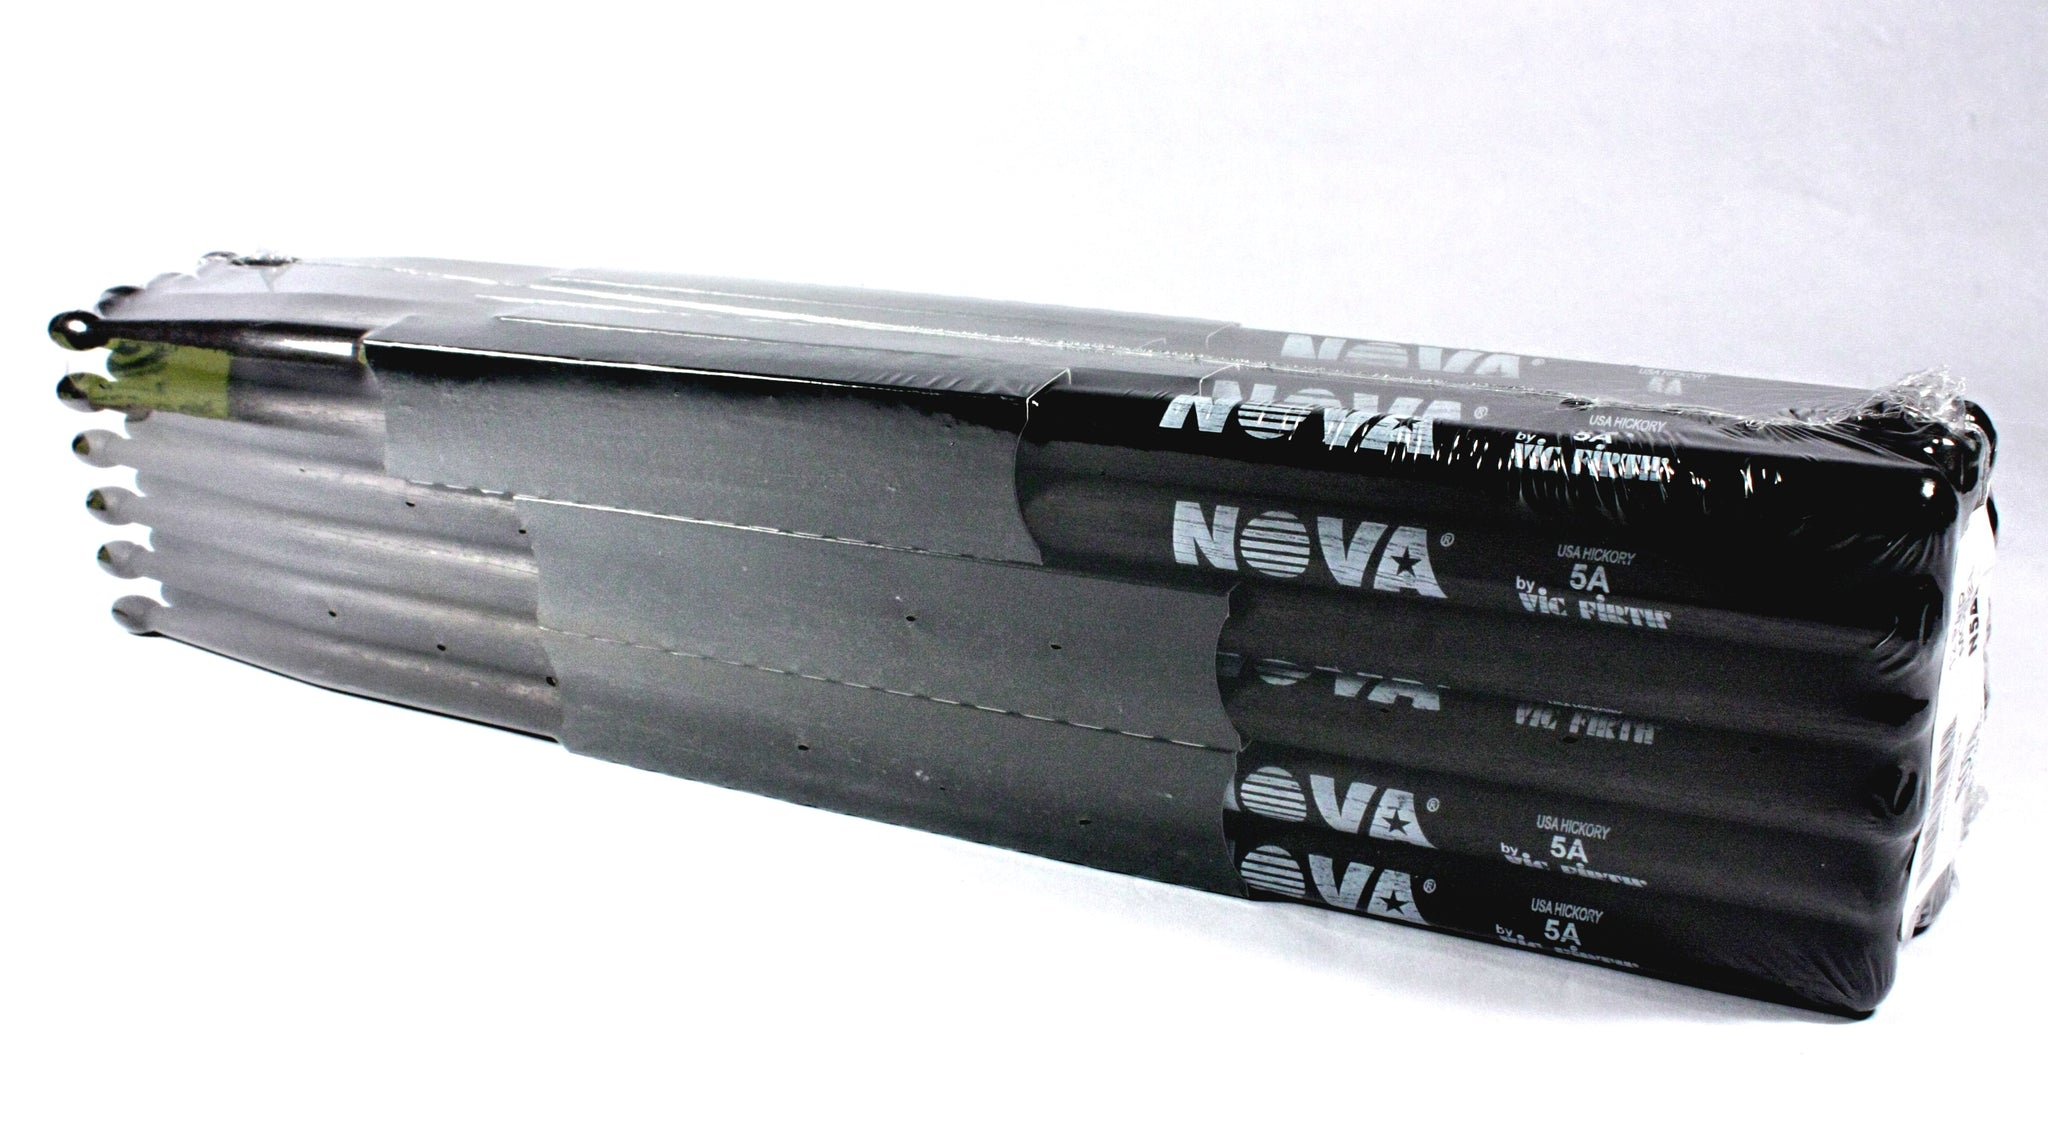 (12-Pairs) Vic Firth® NOVA® 5A Hickory Drumsticks, Black Sticks, Black Wood Tip. #N5AB